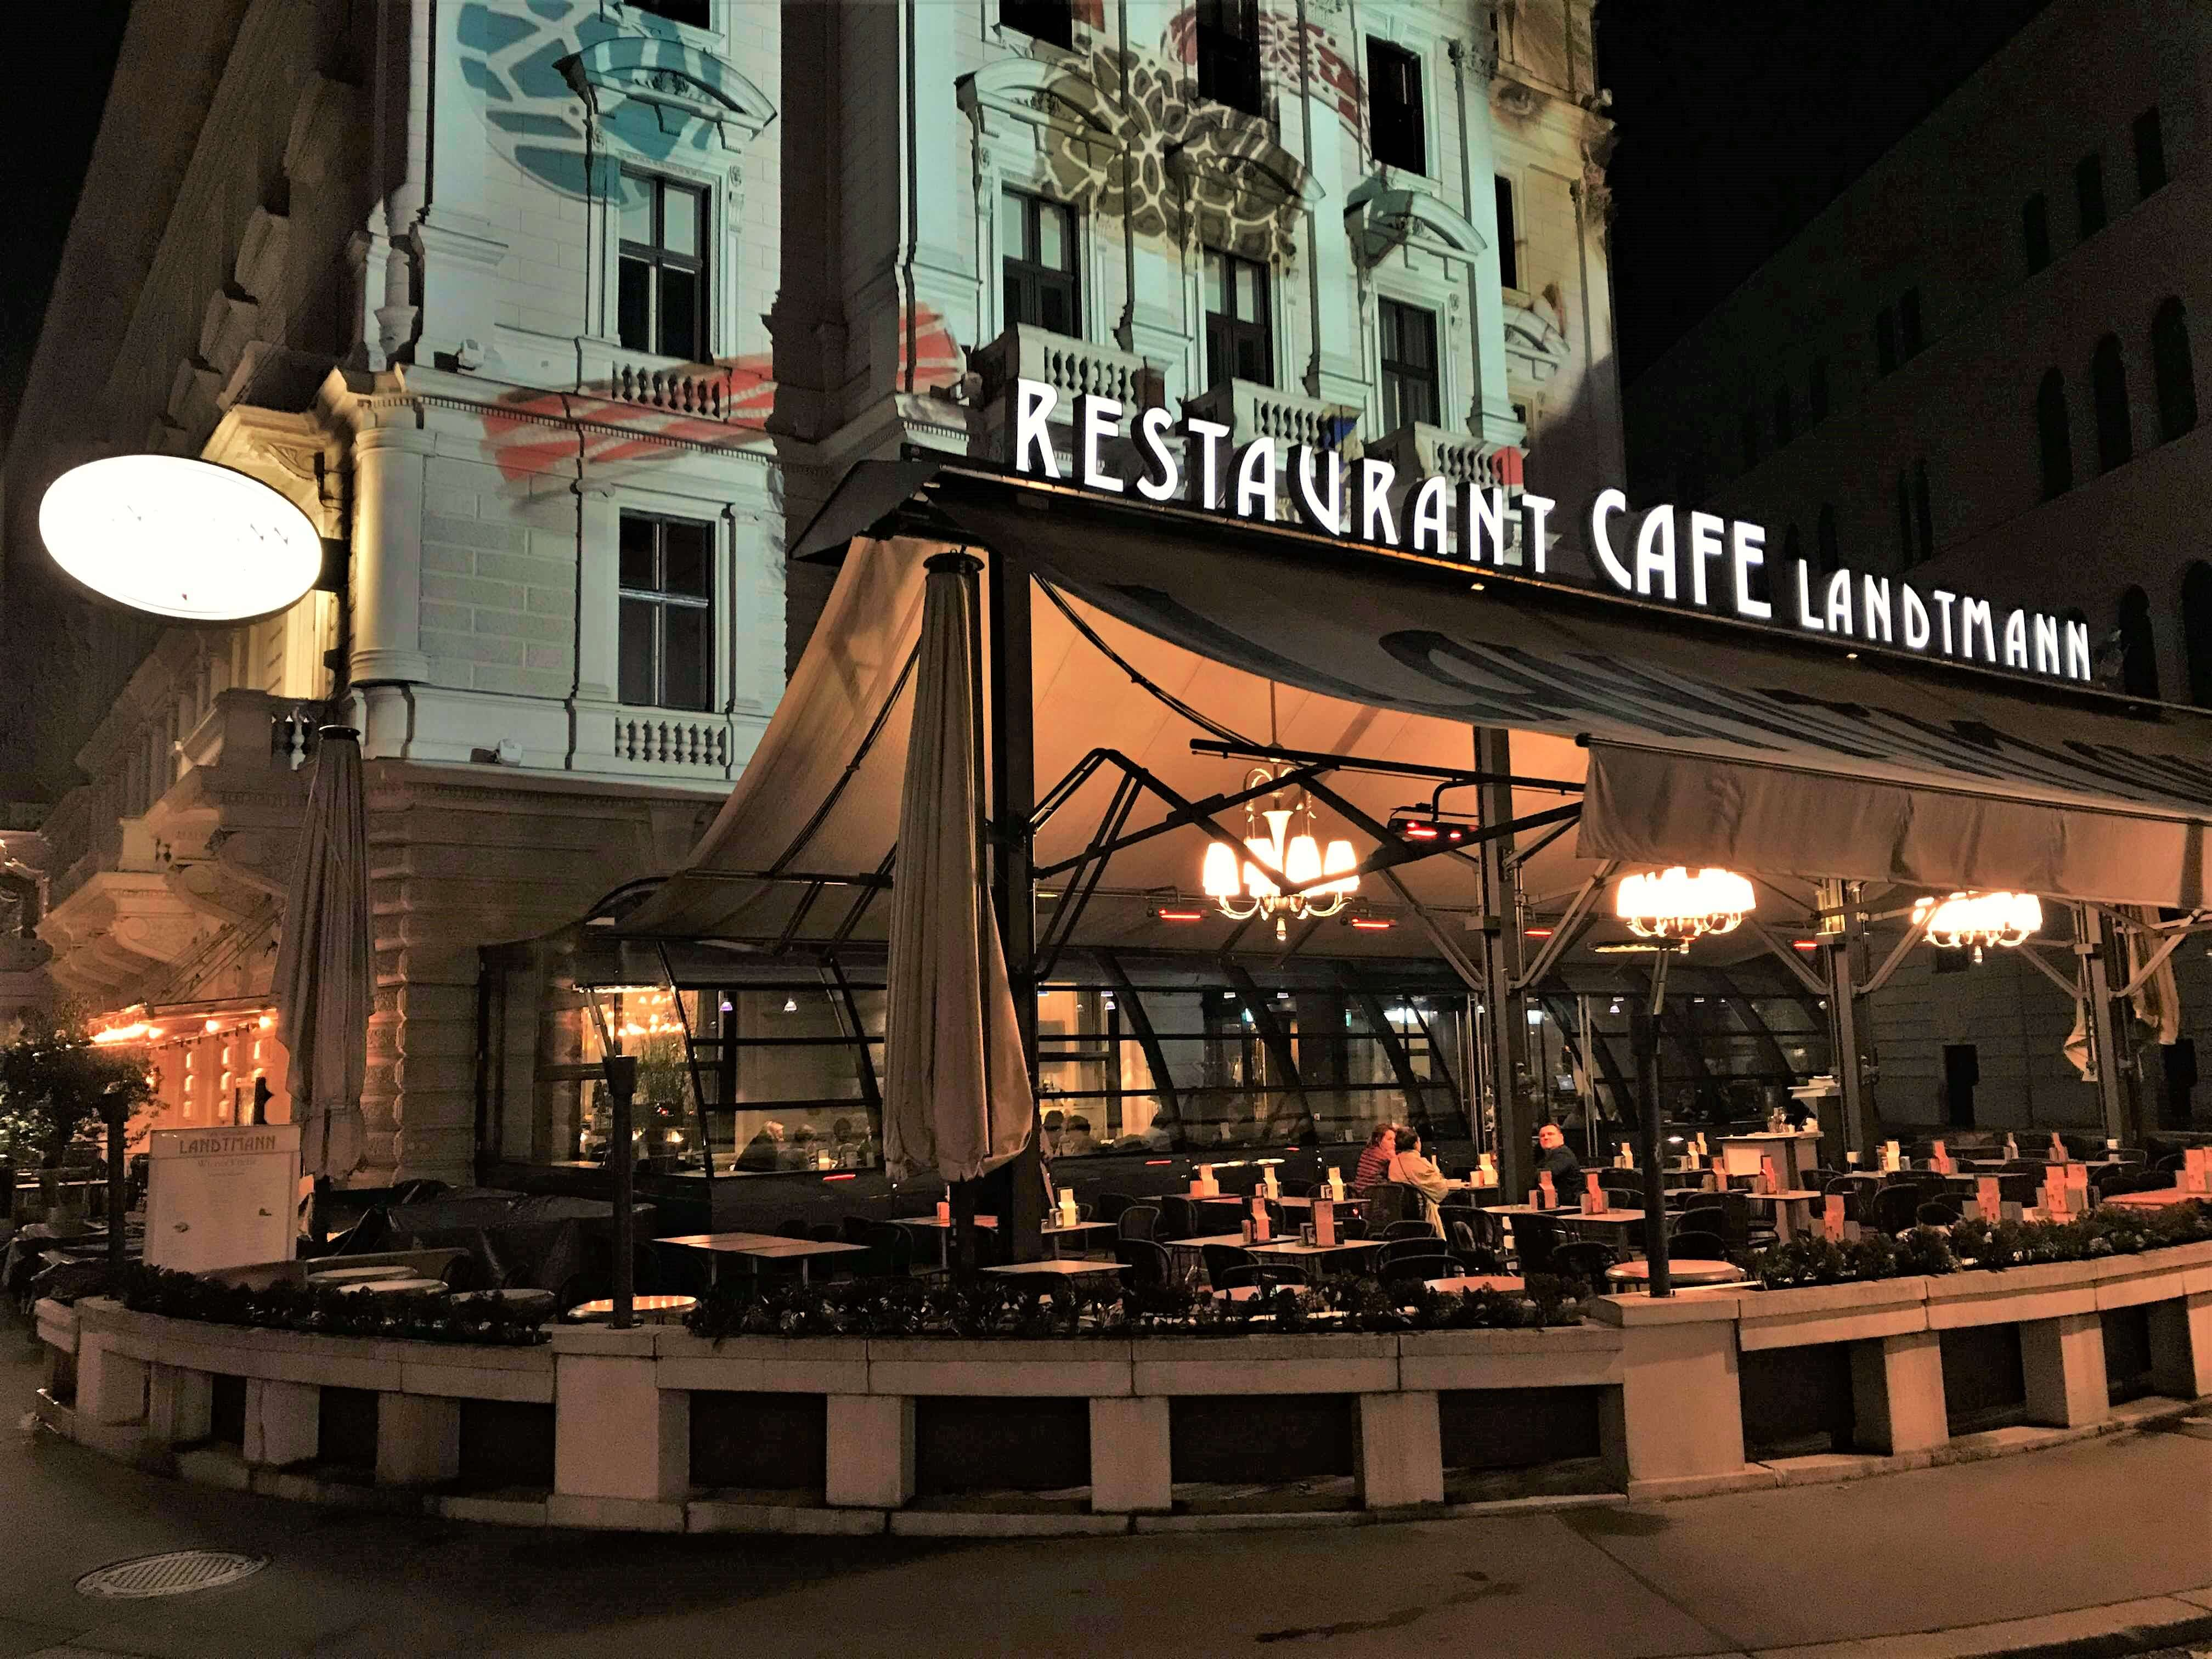 Landtmann restaurant and cafe in Vienna